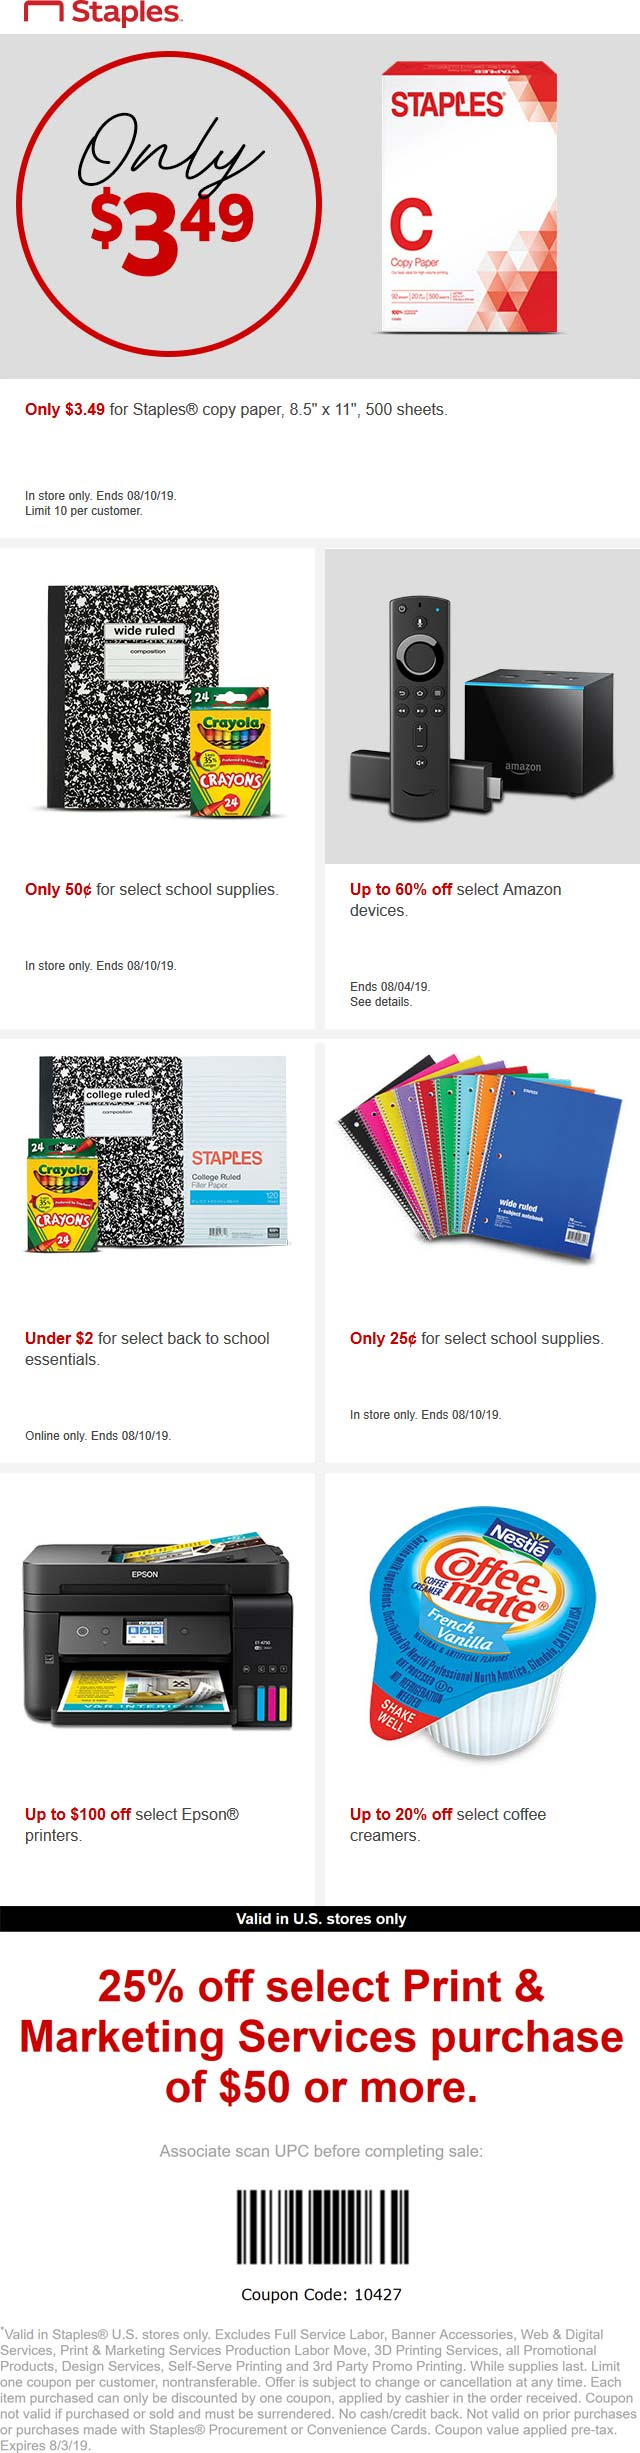 Staples coupons & promo code for [December 2020]